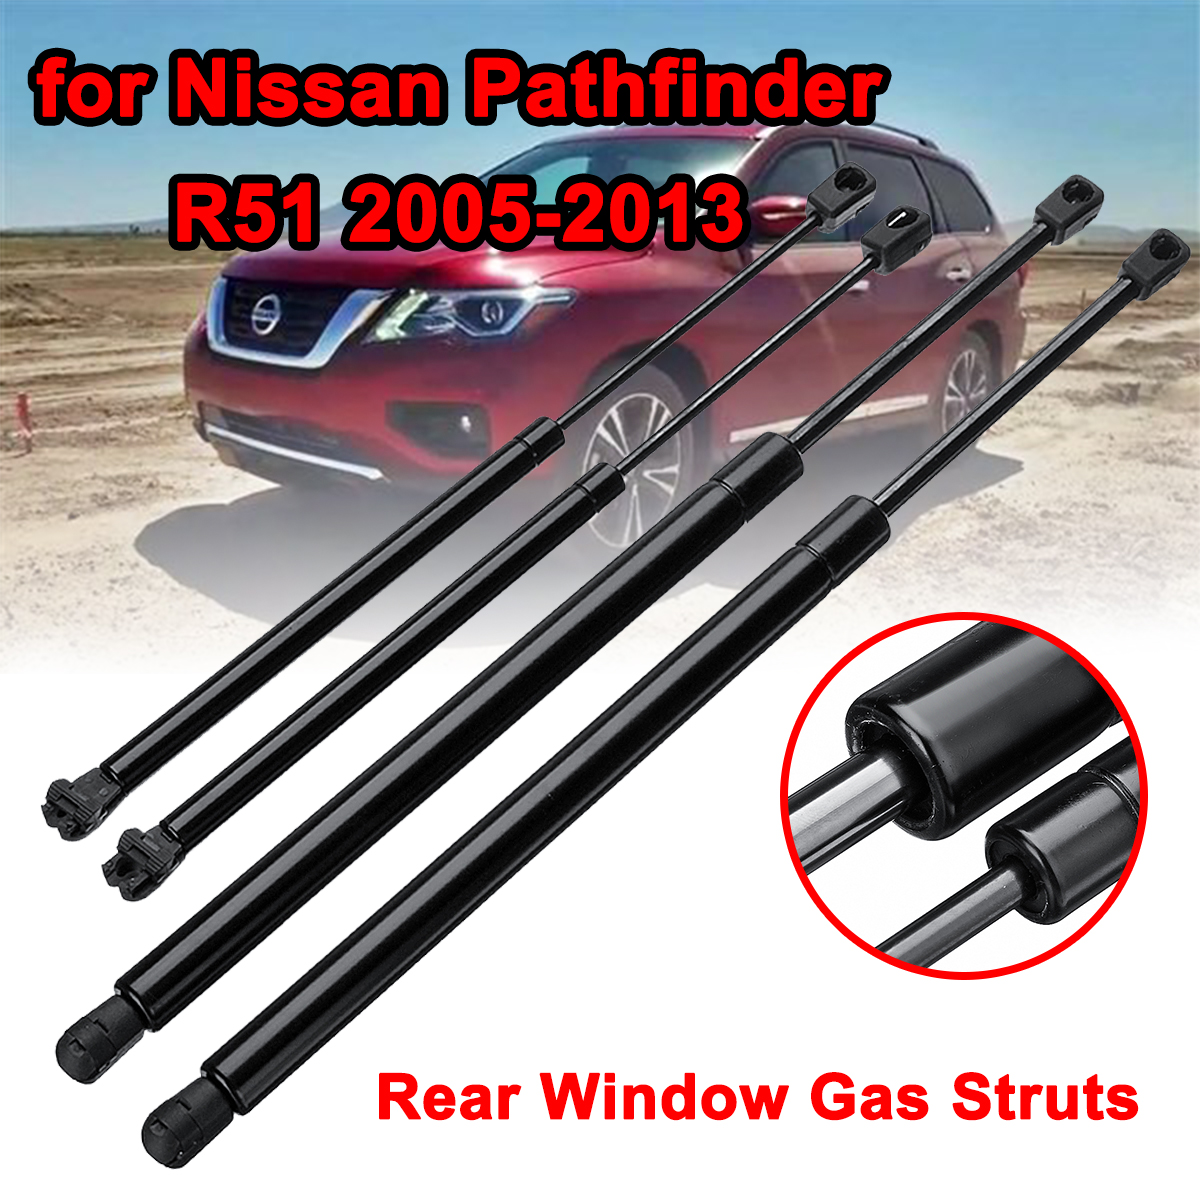 Rear Window Tailgate Boot Gas Struts Support For Nissan Pathfinder R51 2005-2012